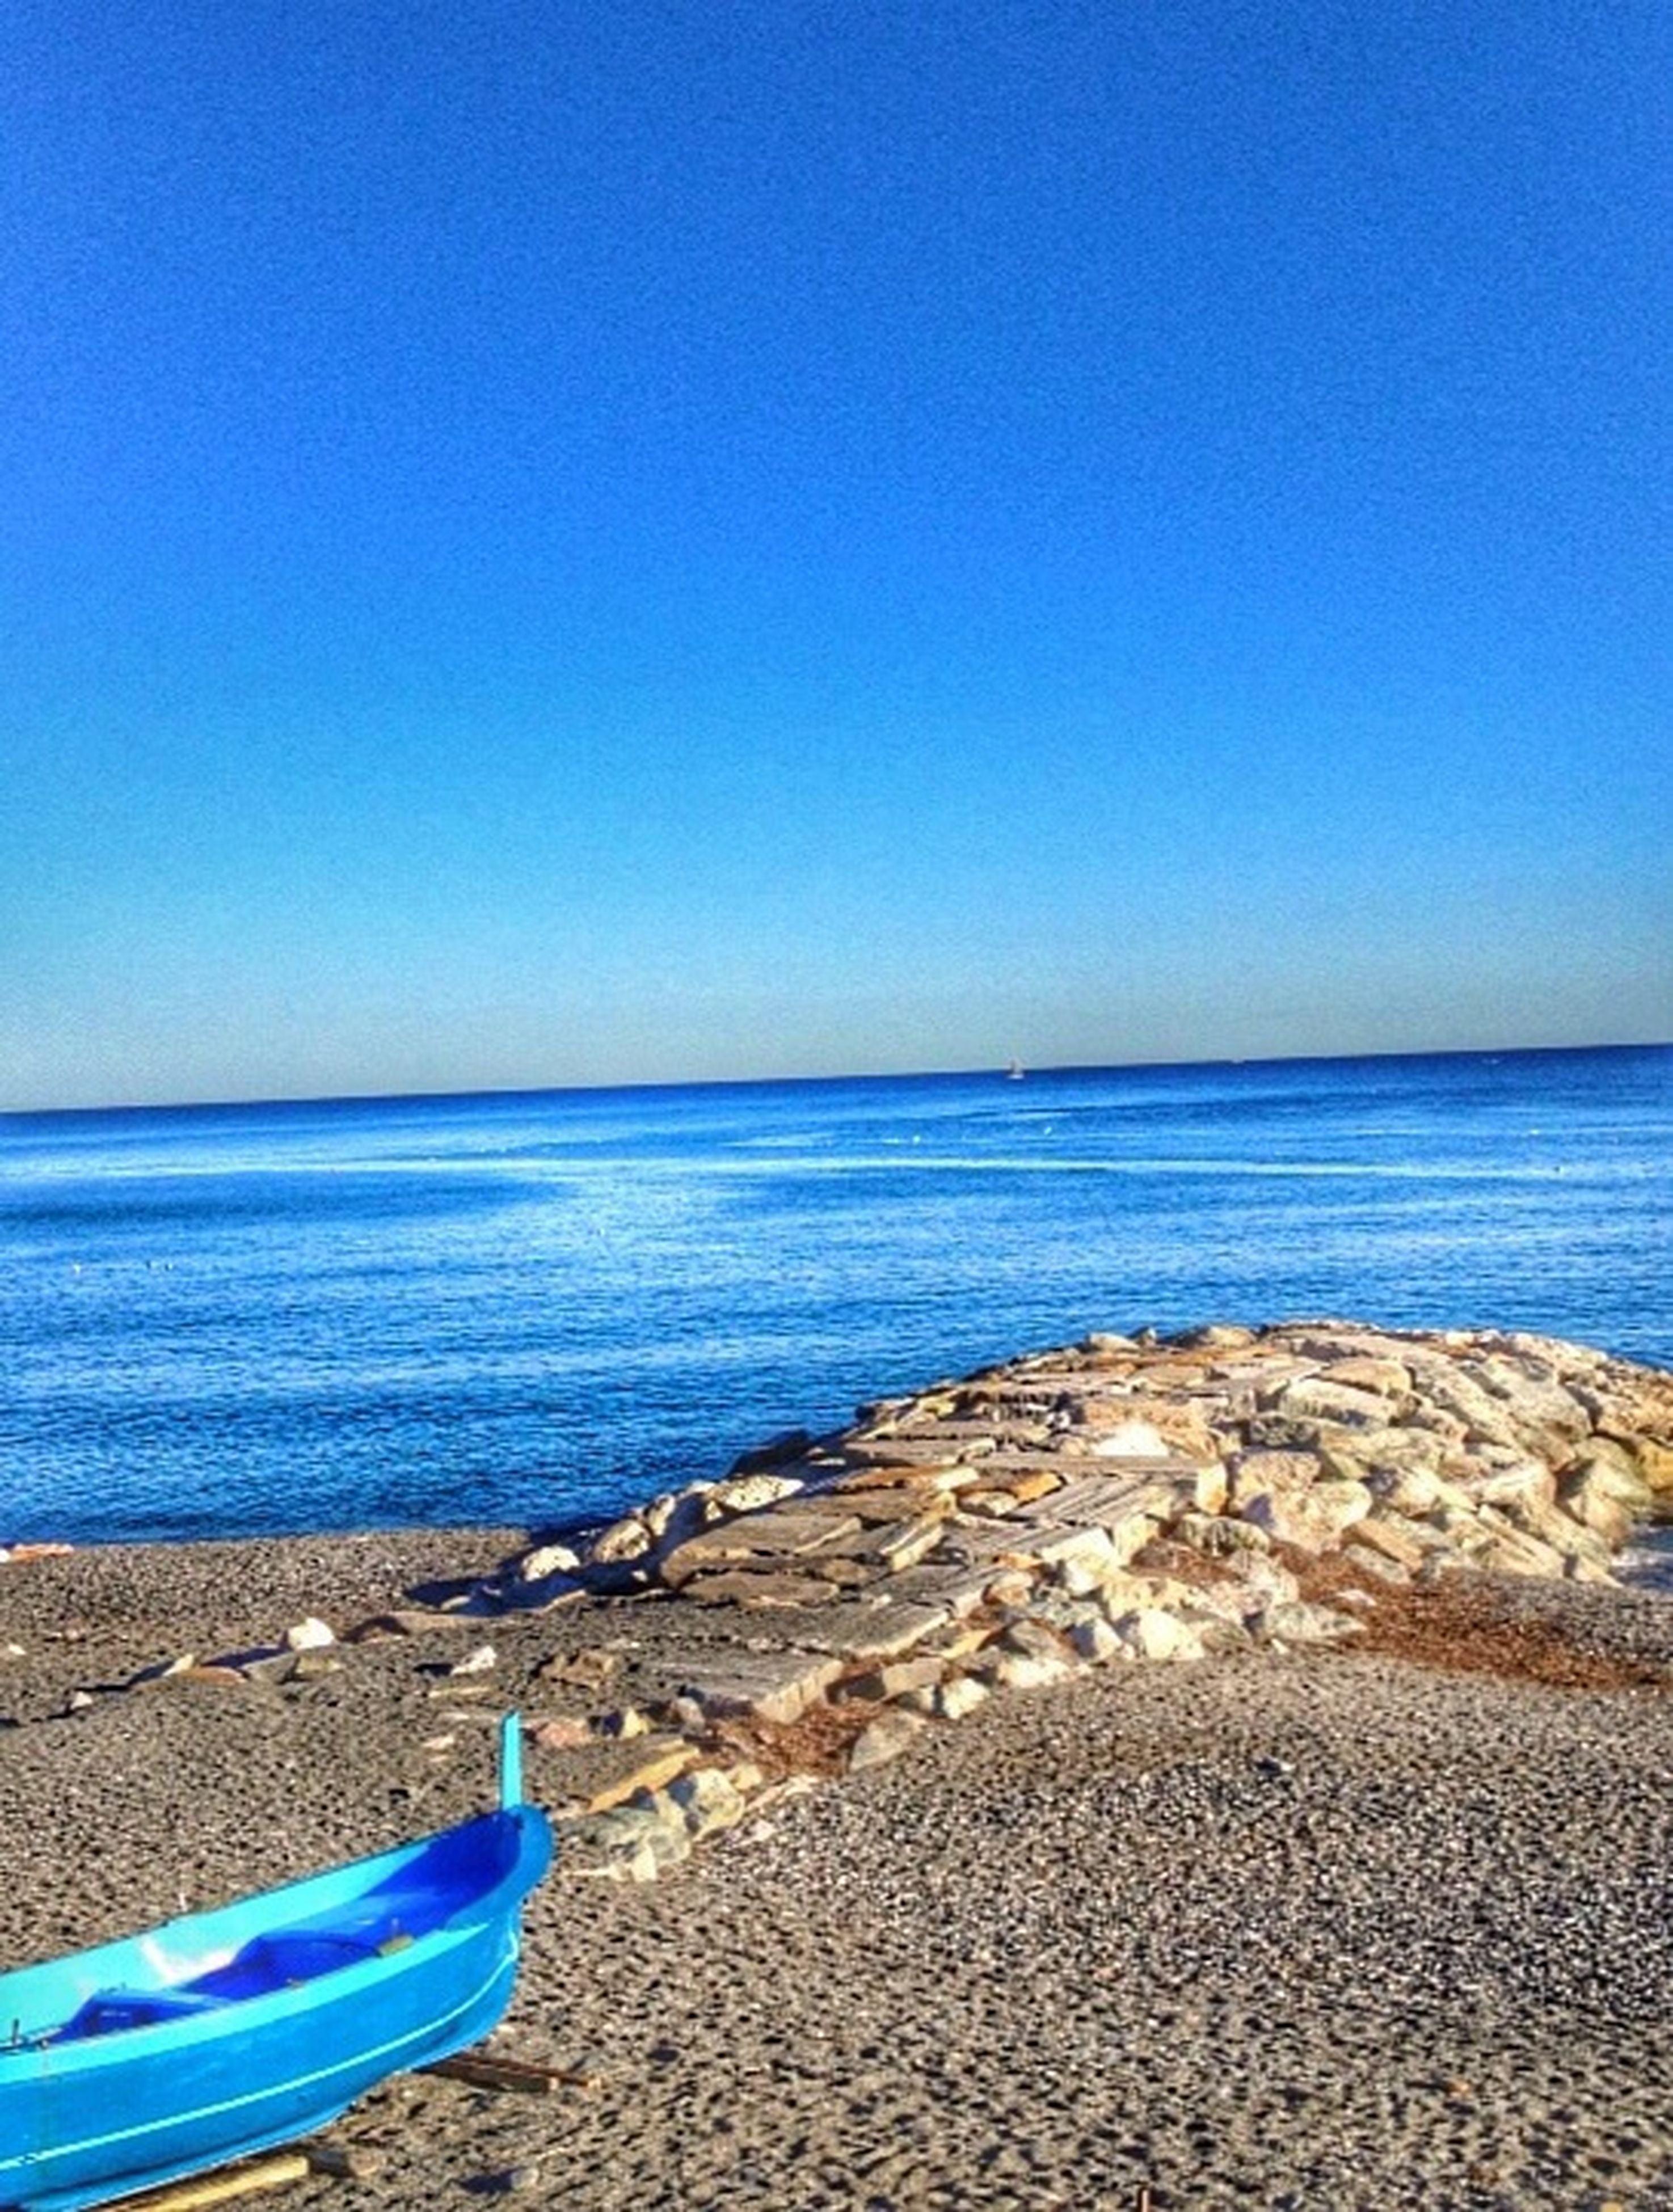 sea, blue, clear sky, beach, copy space, water, horizon over water, tranquil scene, tranquility, shore, sand, scenics, beauty in nature, nature, idyllic, day, vacations, seascape, outdoors, calm